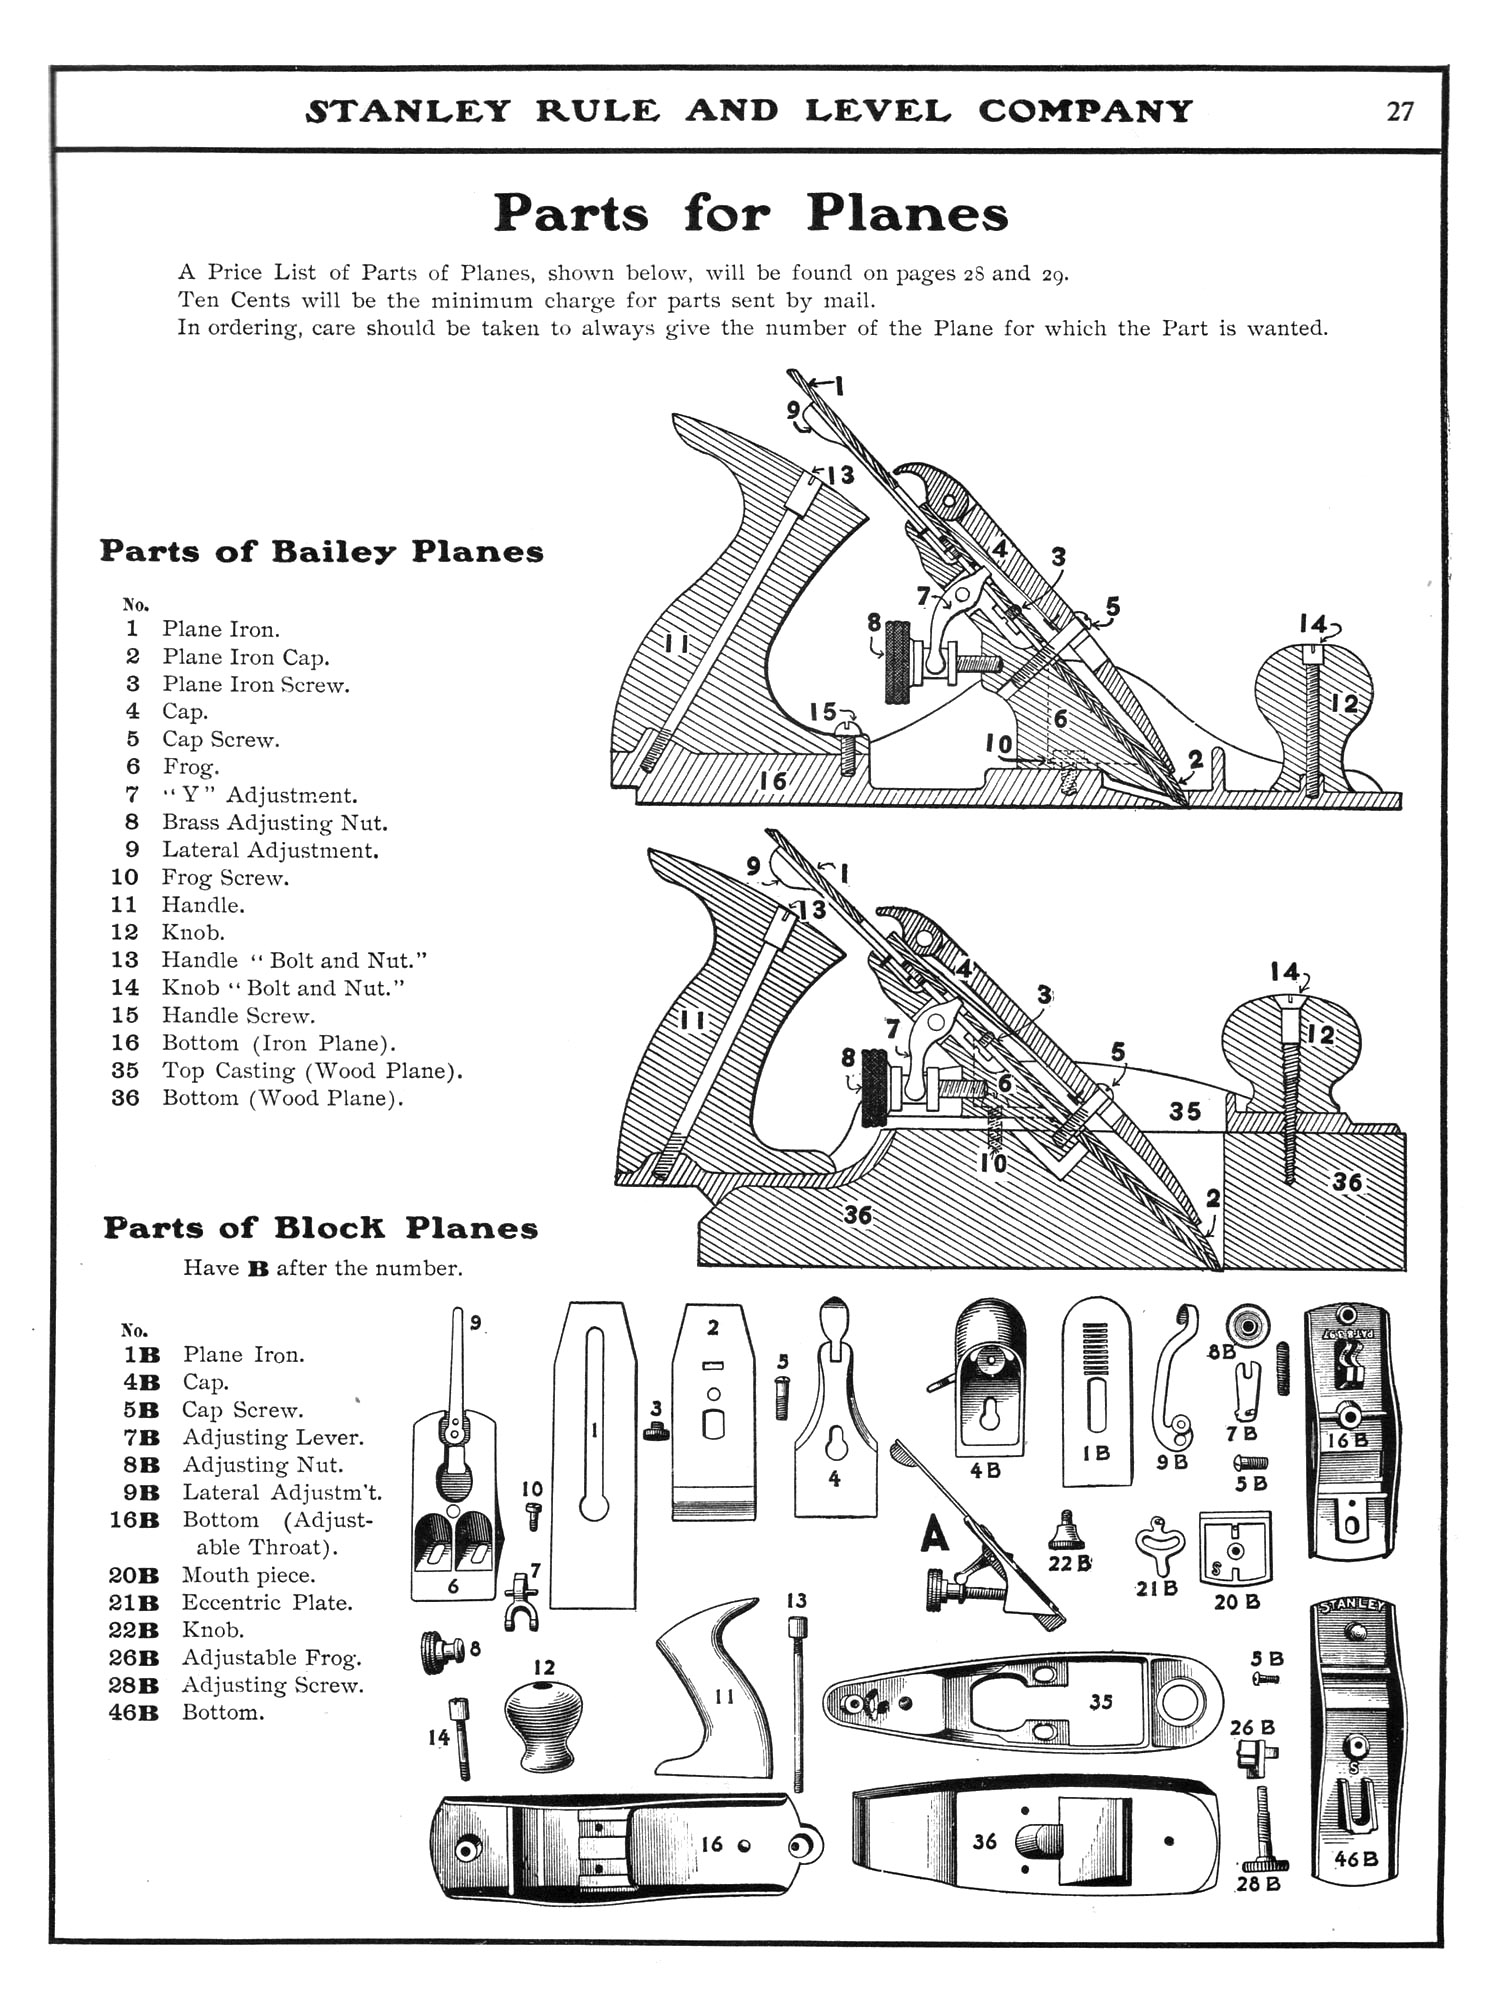 paper airplane diagram of parts ups wiring in 10kva stanley 1902 catalog handplane central